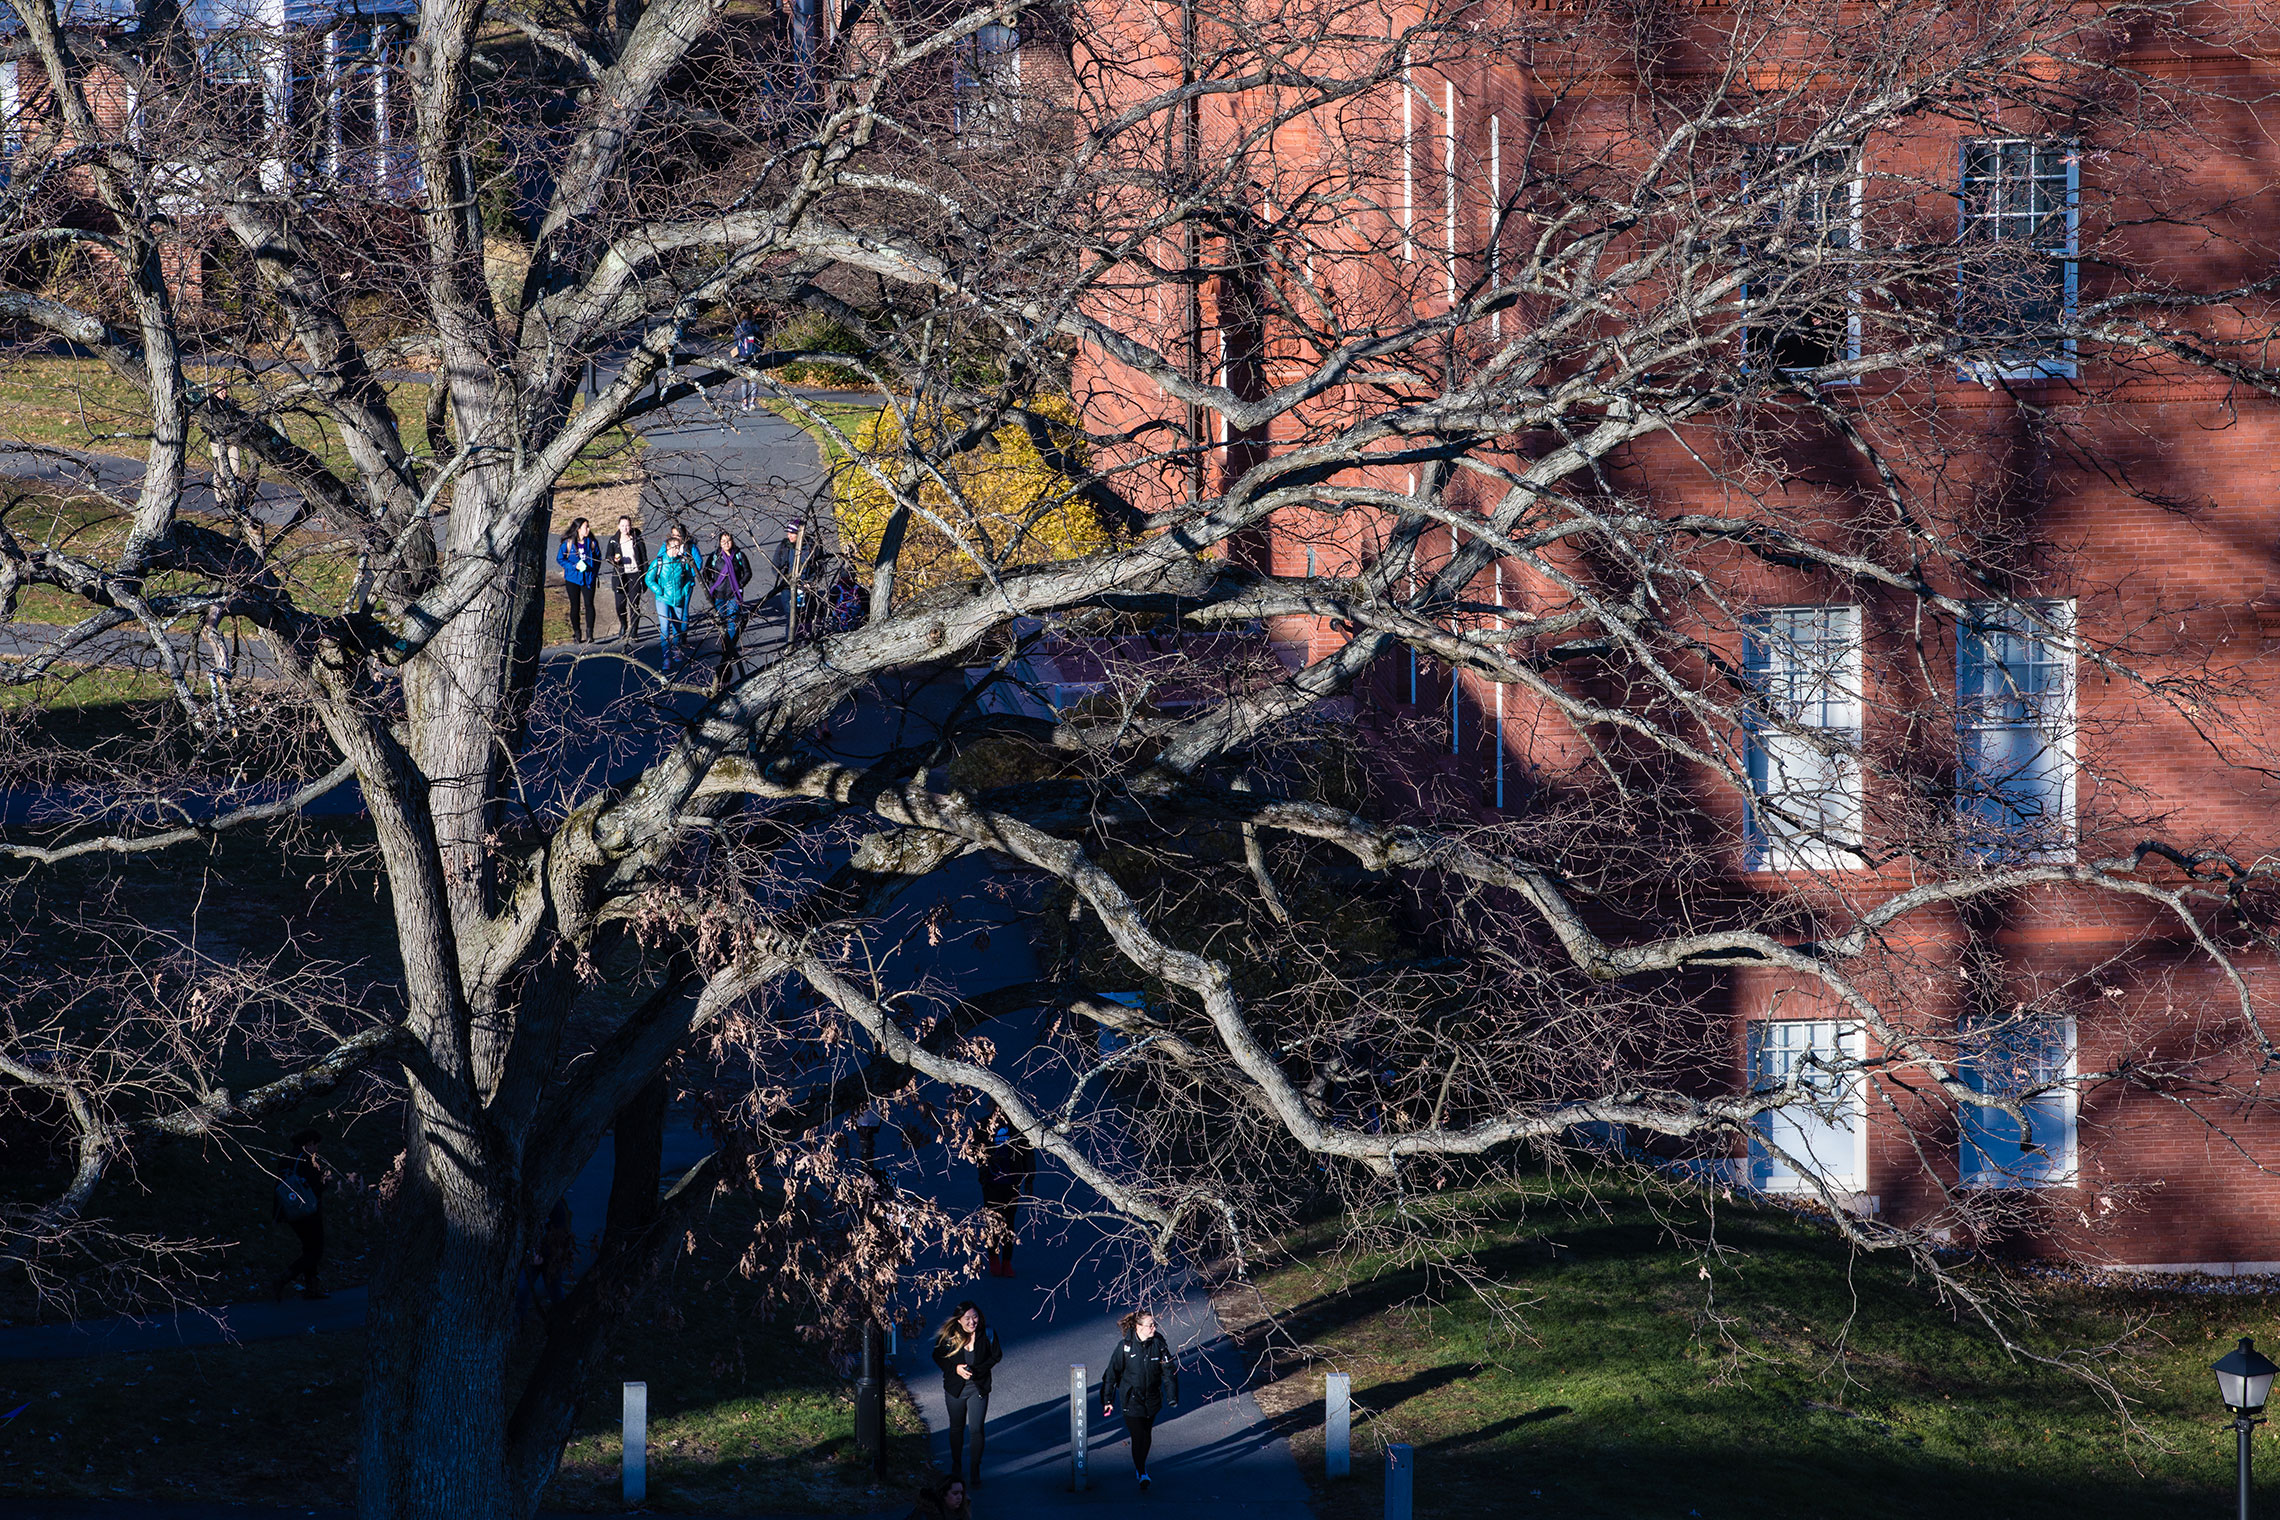 A fall day on the campus of Amherst College.